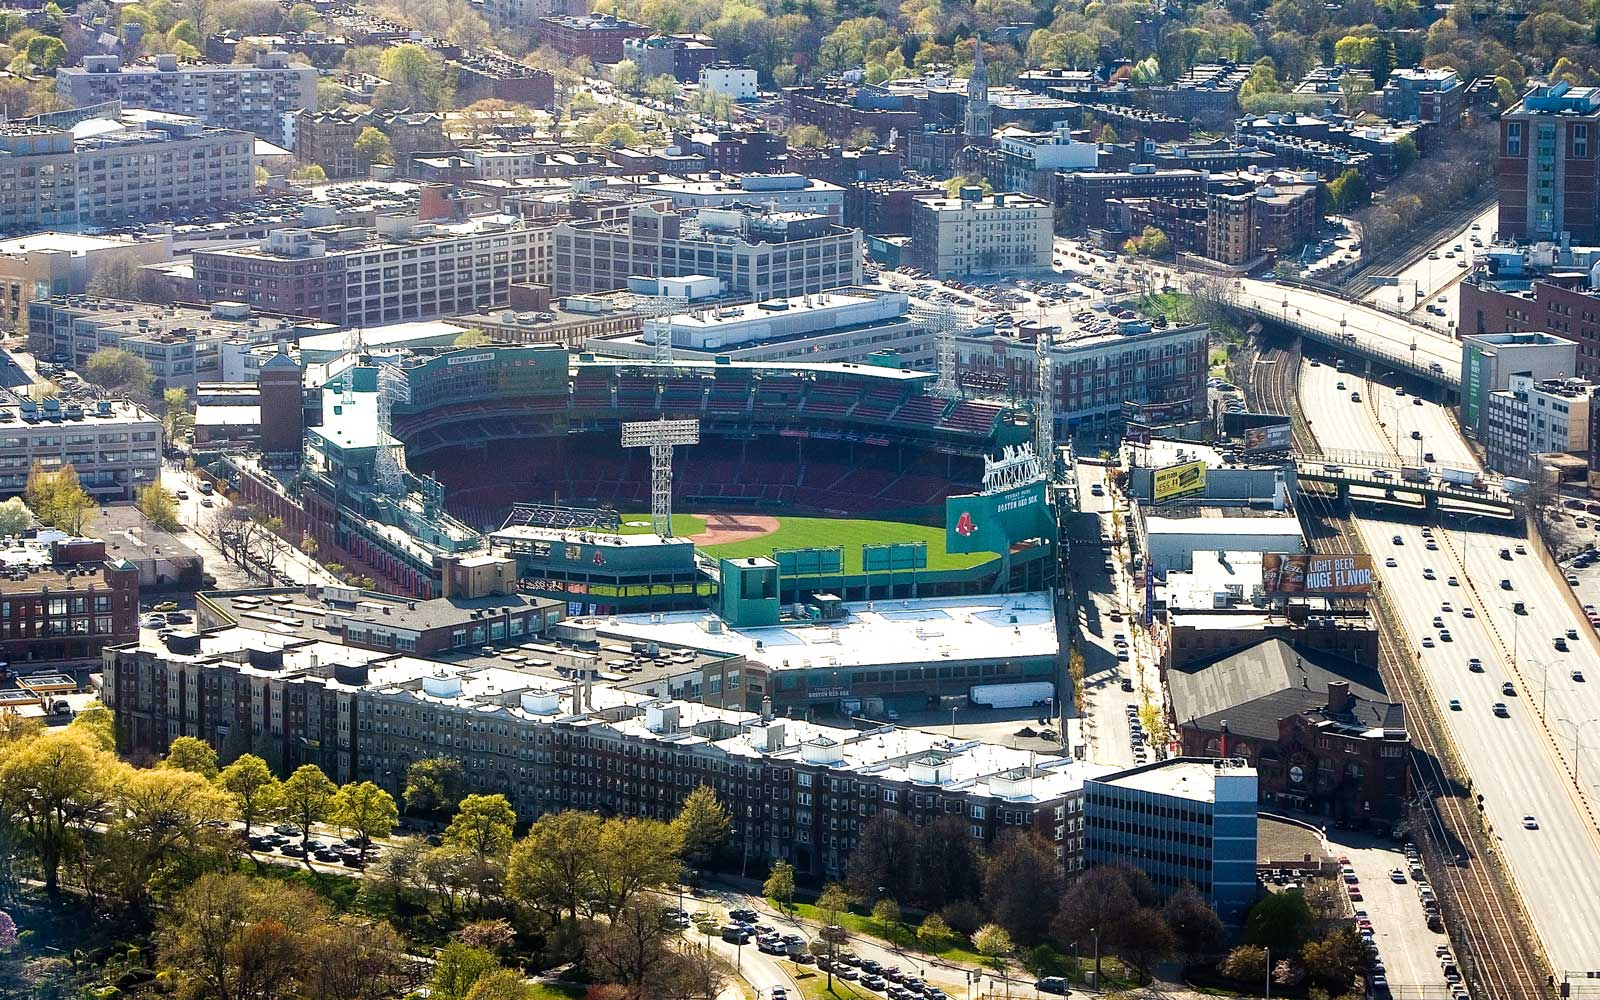 A view of Fenway Park in Boston with surroundings.  Shot from above.